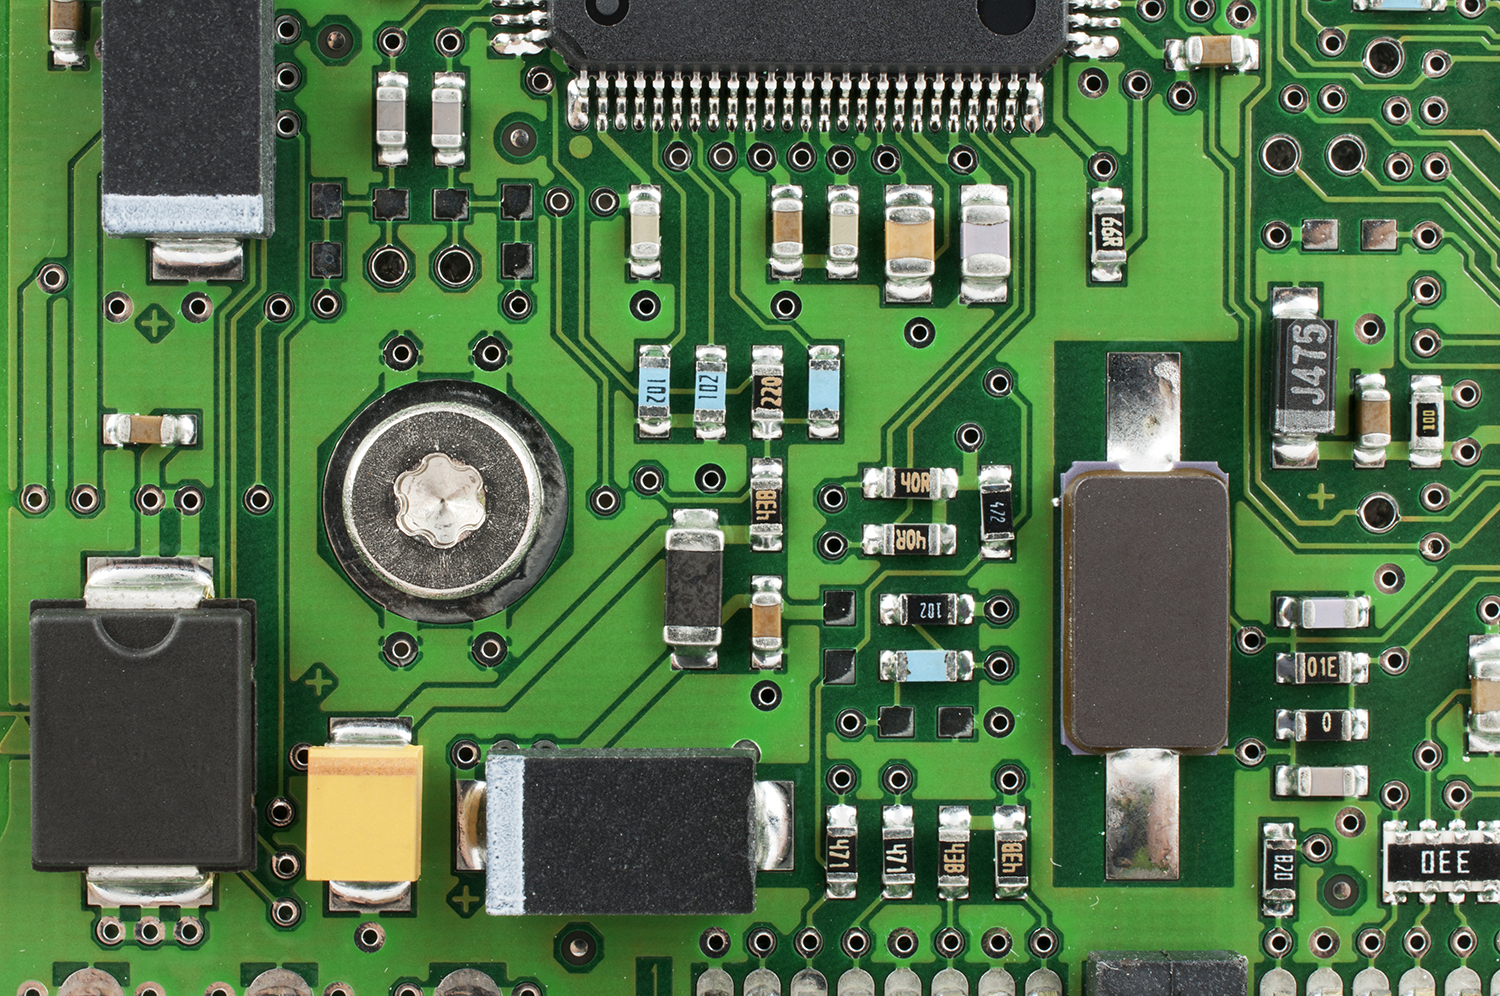 pcb board how to put components